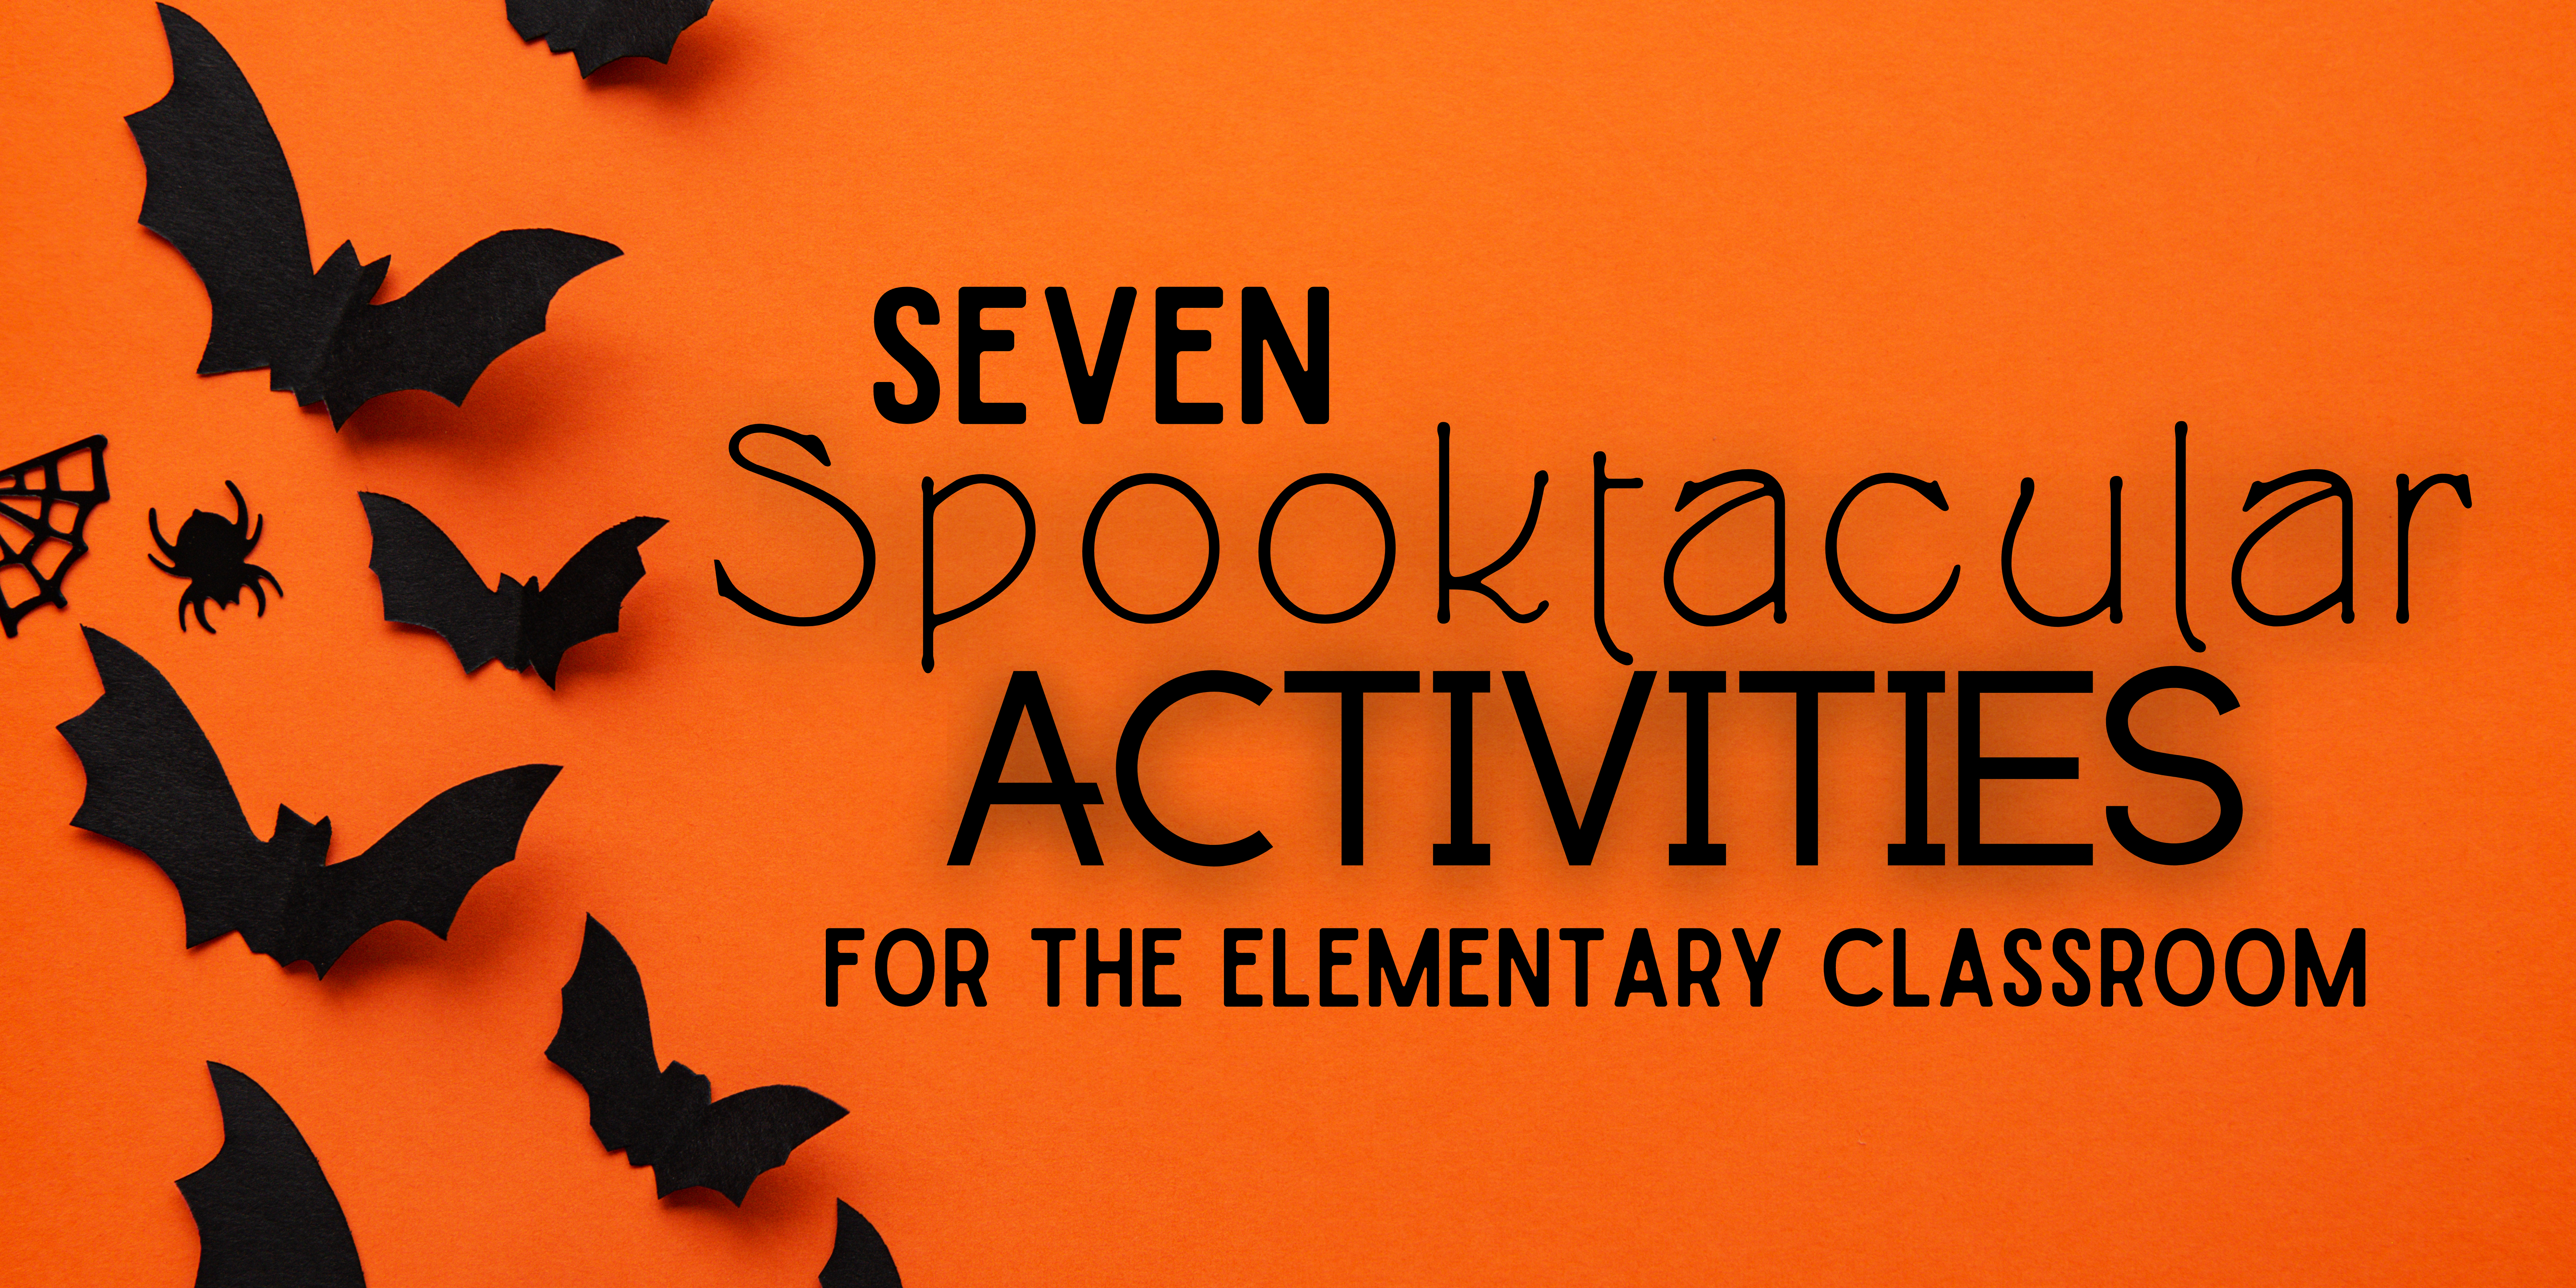 7 Spooktacular Activities for the Elementary Classroom